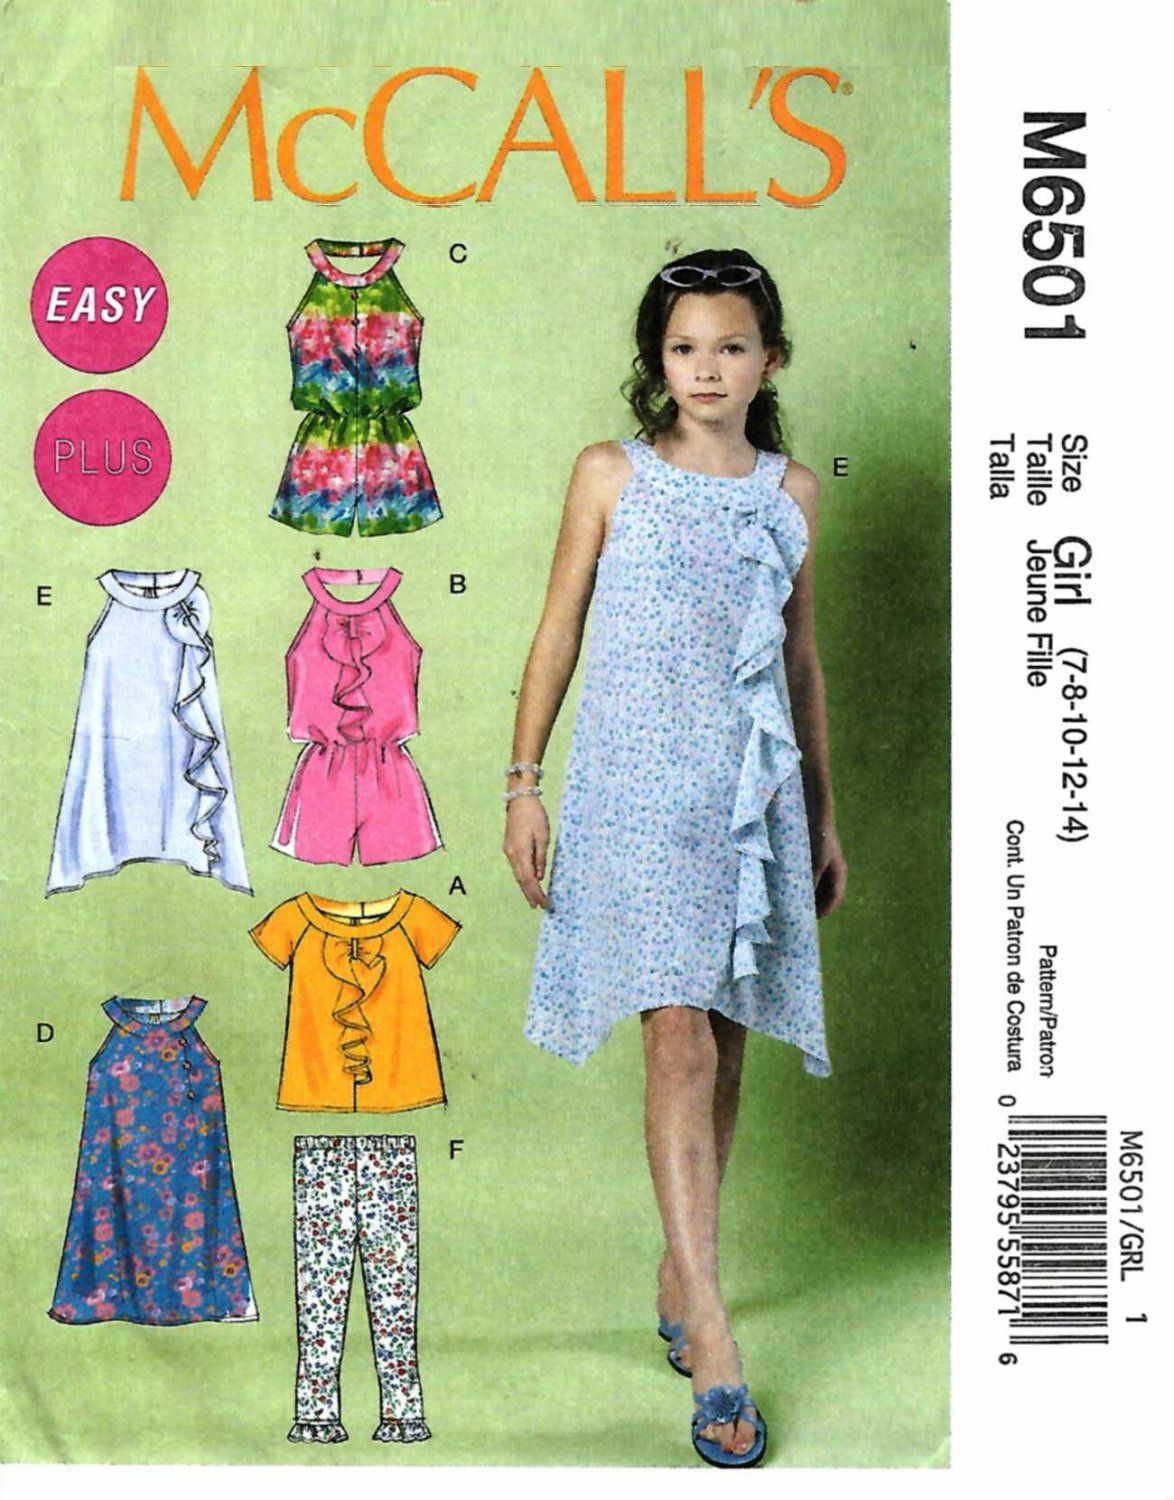 ded3152dcc2f McCall s Sewing Pattern 6501 M6501 Girls Sizes 7-14 Easy Dress Top Leggings  Jumpsuit Romper ...